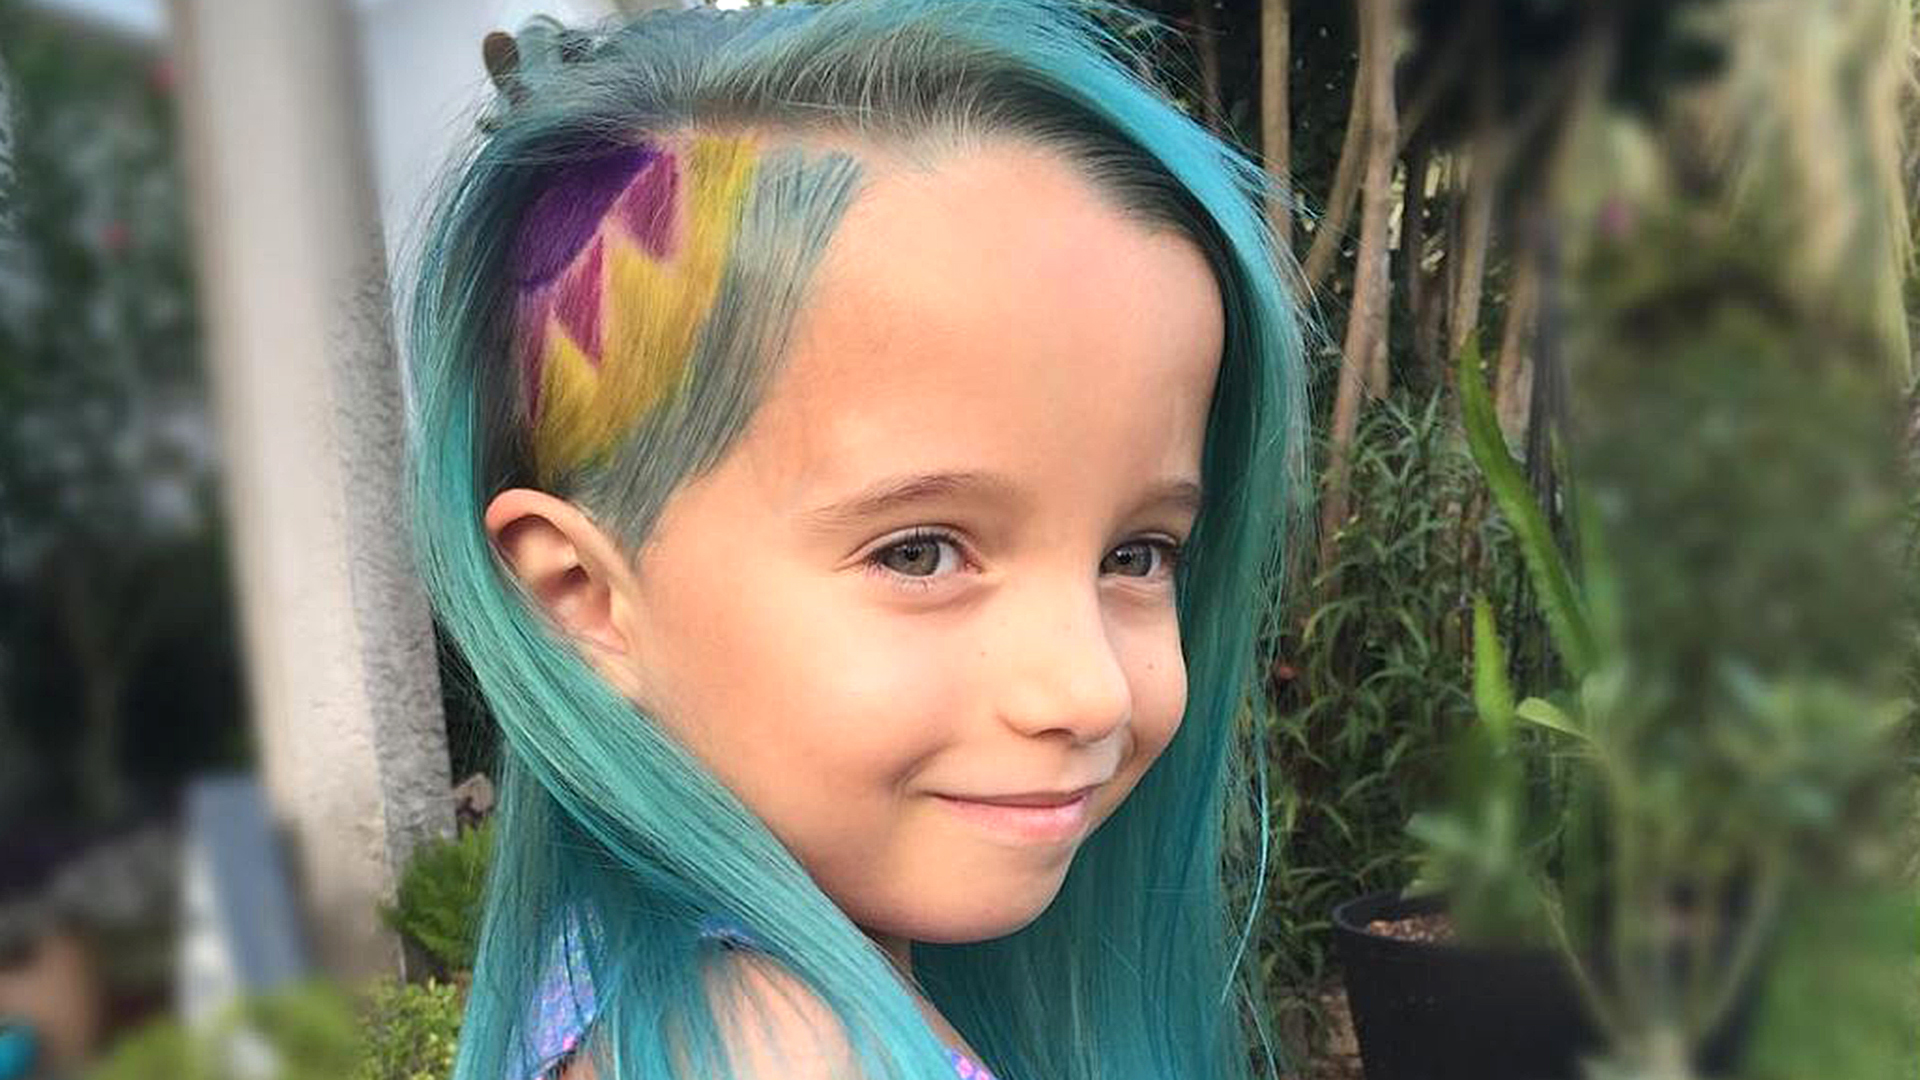 Coiffure Facile Fille 5 Ans Can You Be Too Young To Have Dyed Hair 6 Year Olds 39teal